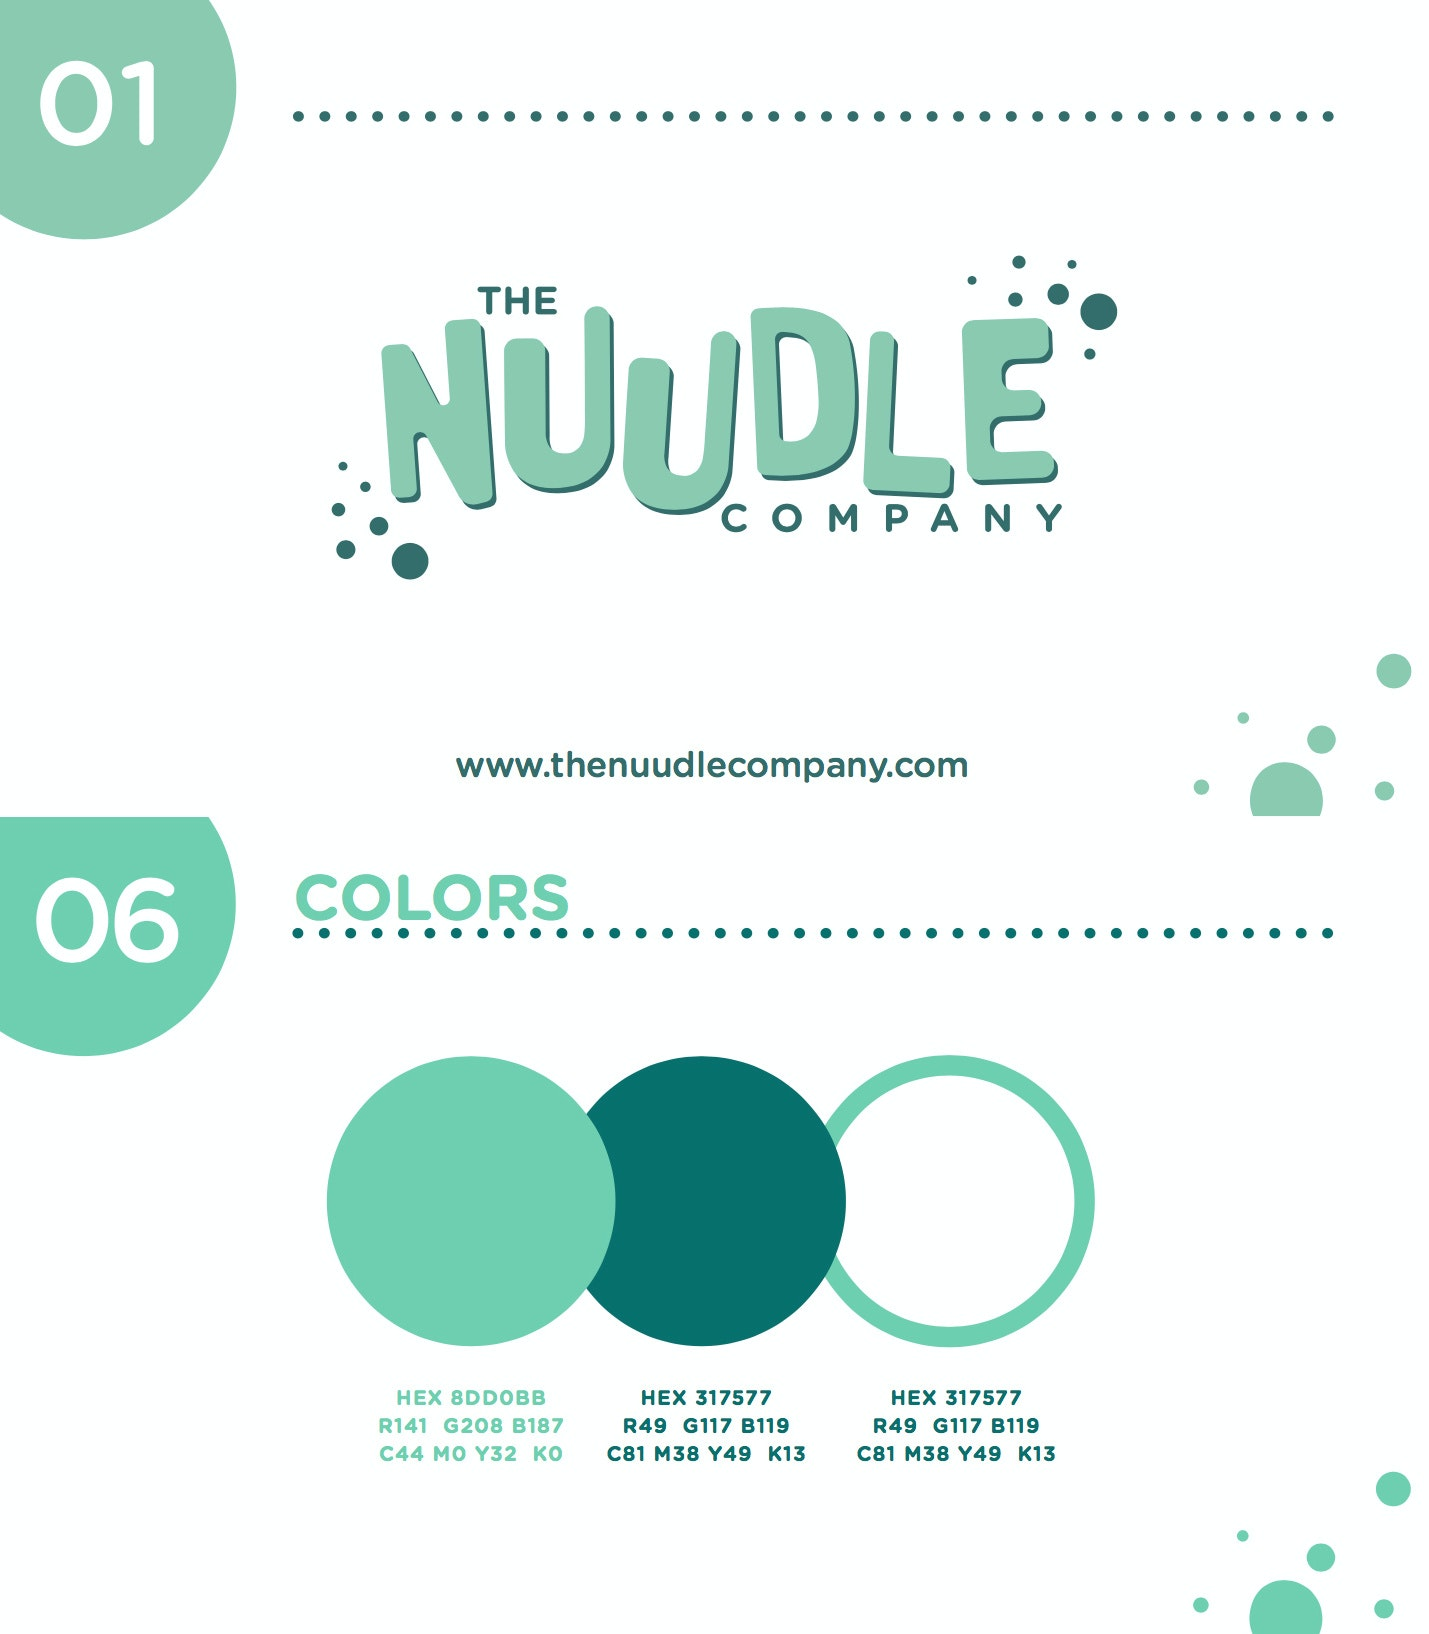 THE NUUDLE COMPANY brand style guide